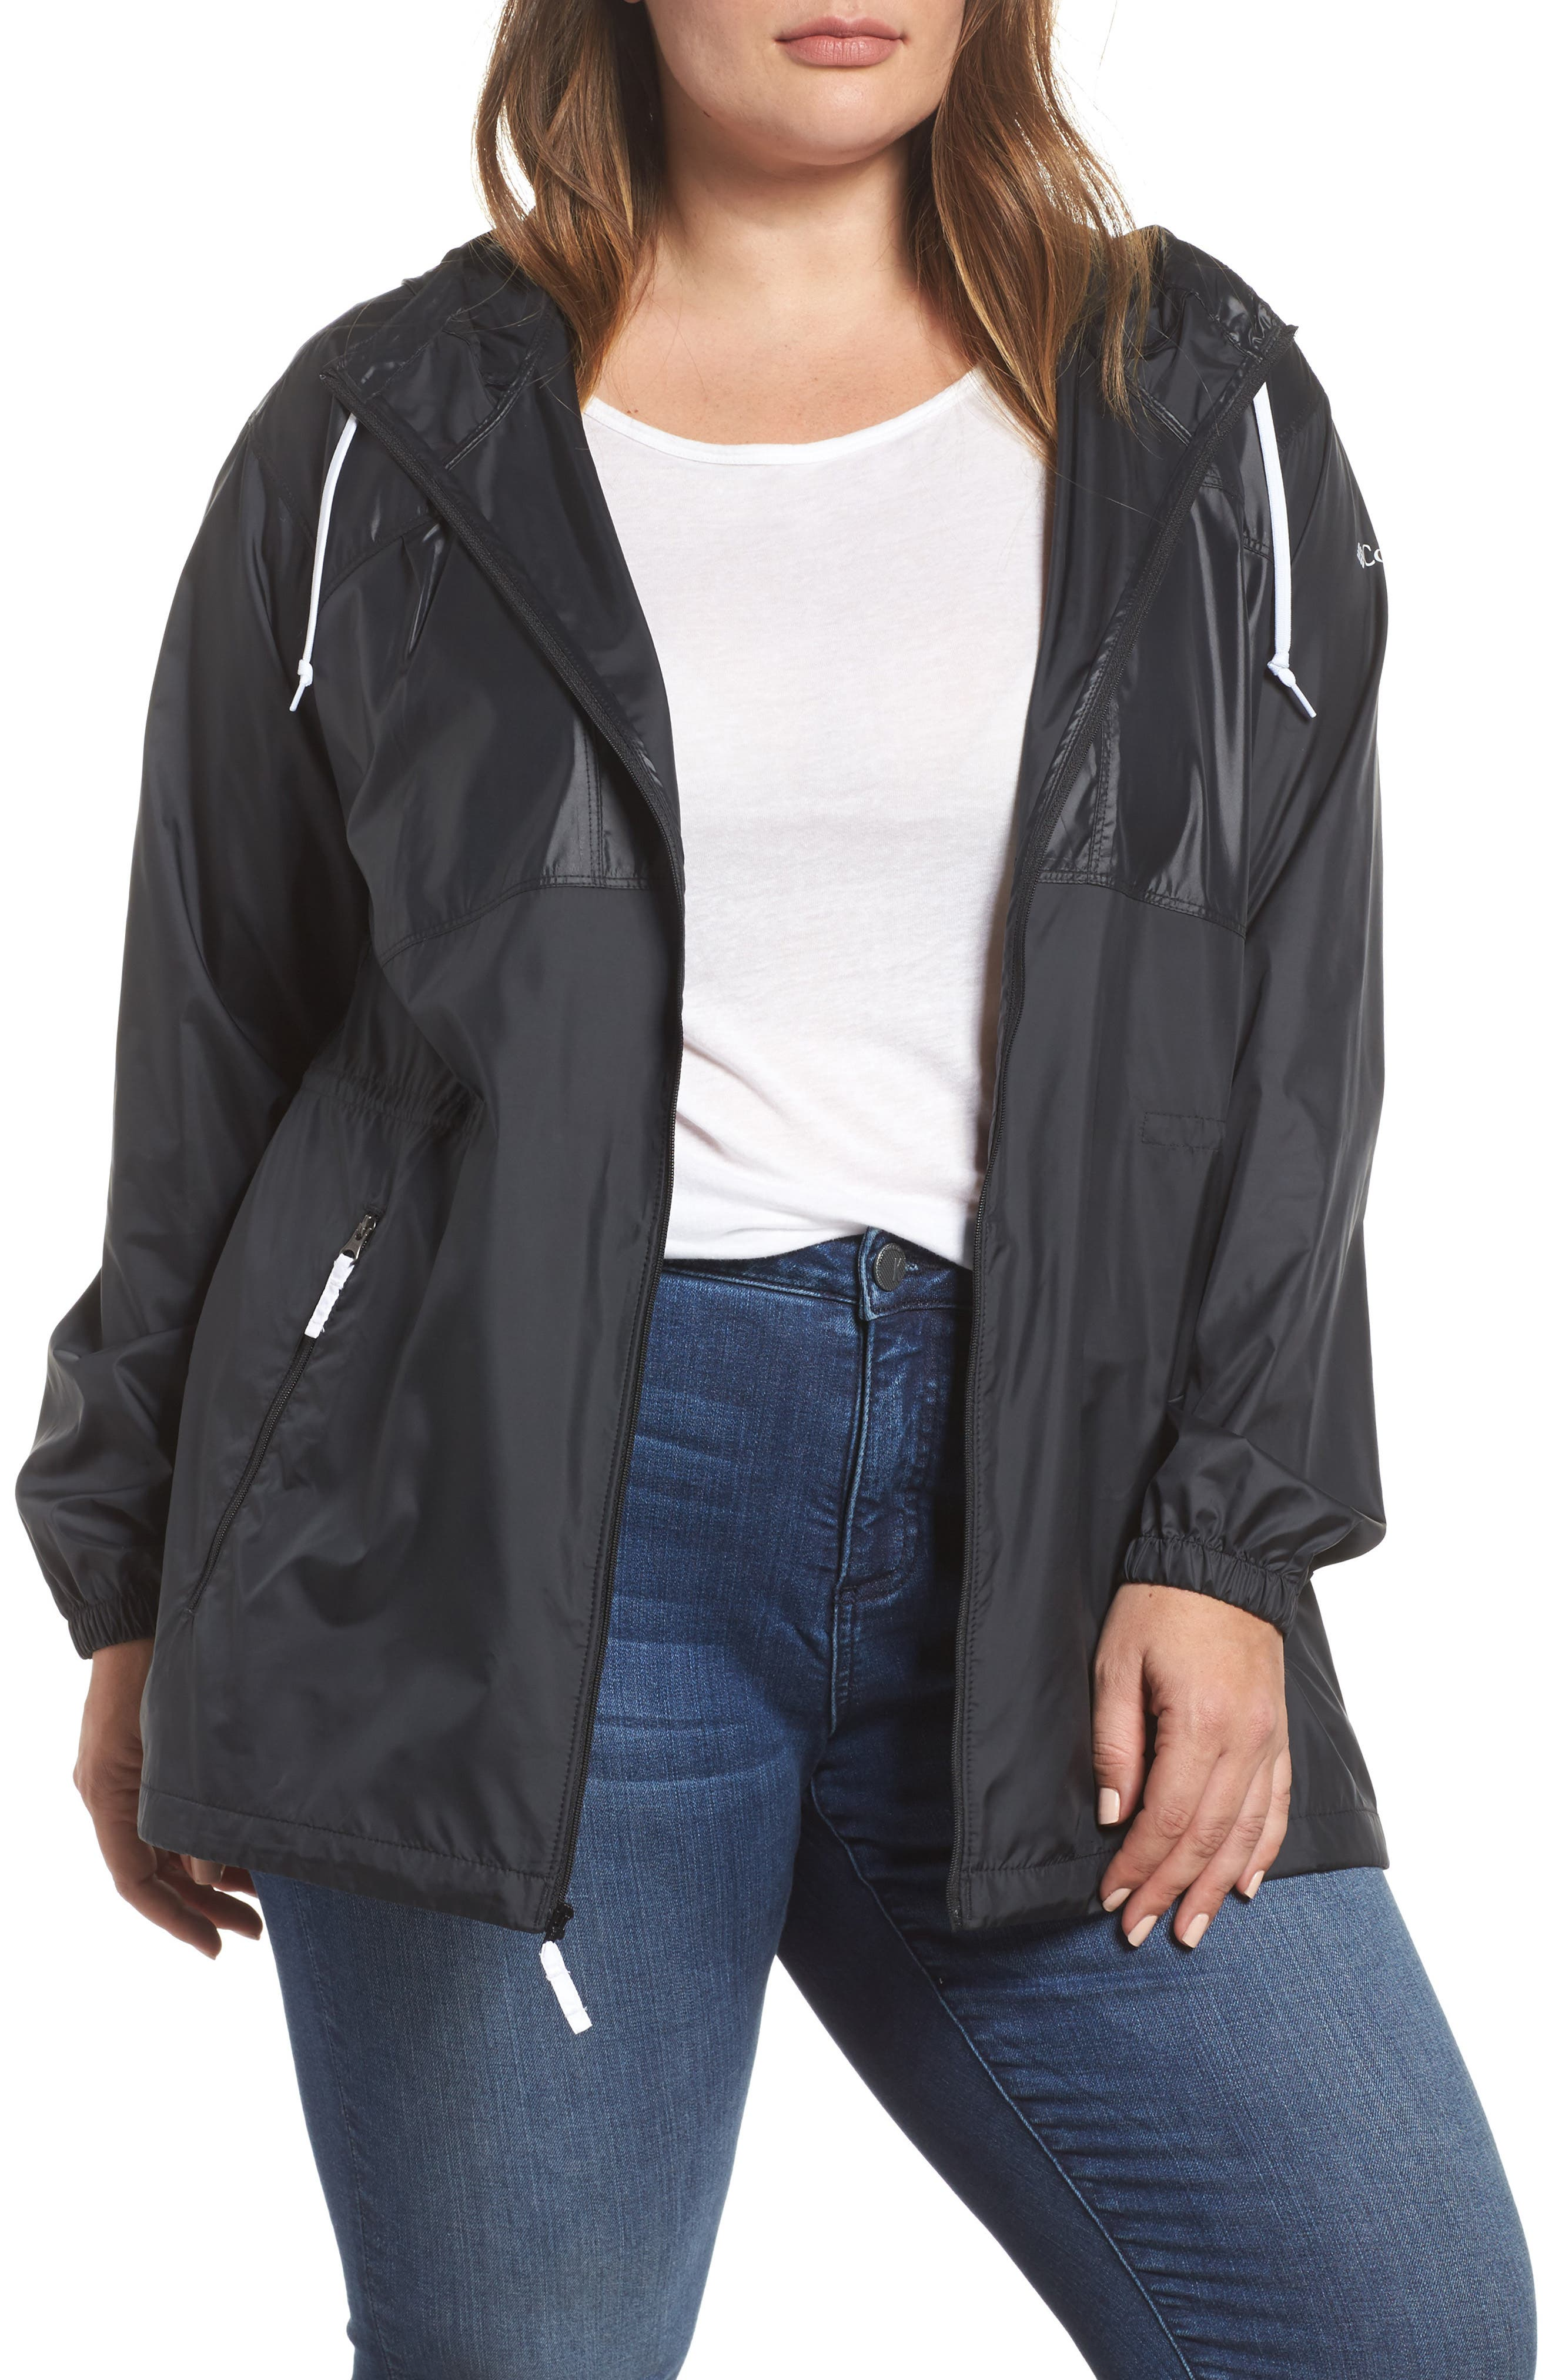 Flashback<sup>™</sup> Water Resistant Hooded Windbreaker,                         Main,                         color, Black Shiny/ Matte White